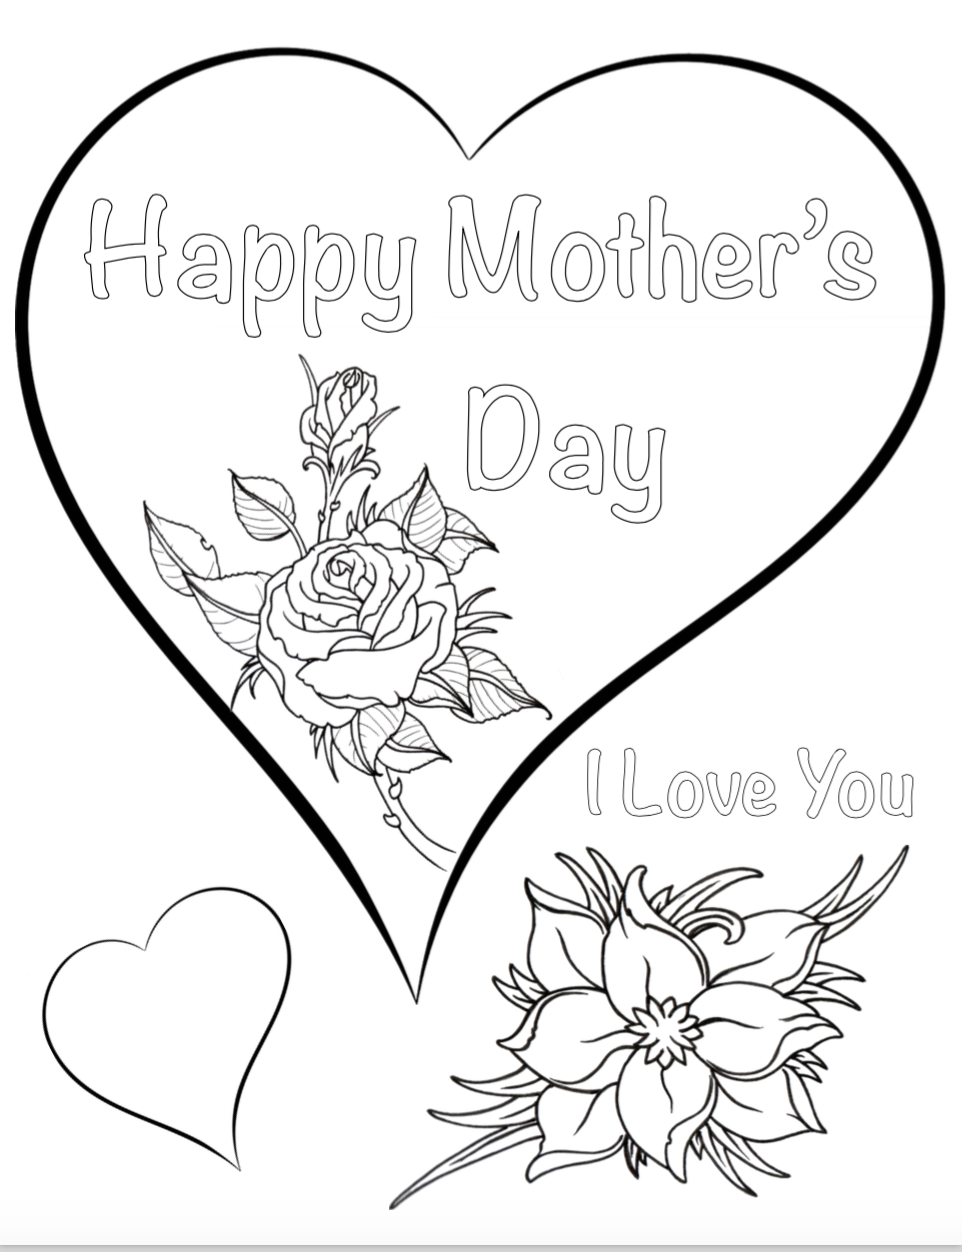 Free Printable Mother S Day Coloring Pages 4 Designs Mothers Day Coloring Pages Mothers Day Coloring Sheets Mother S Day Colors